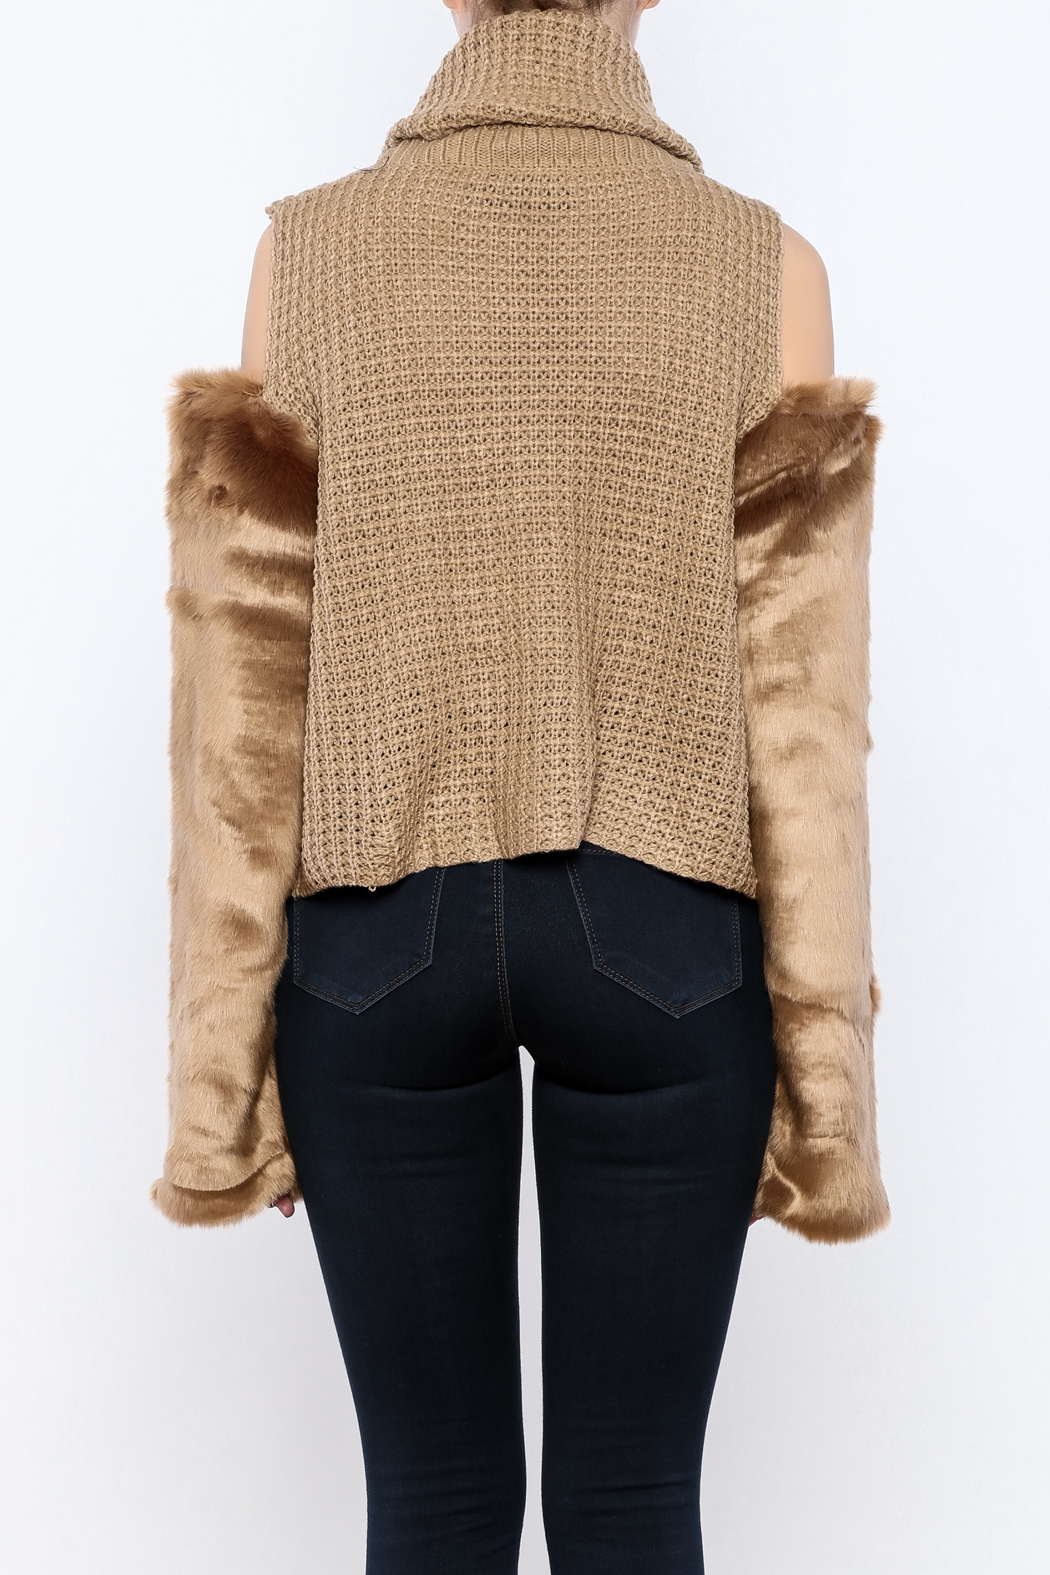 Rehab Faux Fur Sleeve Sweater from New York City by Dor L'Dor ...